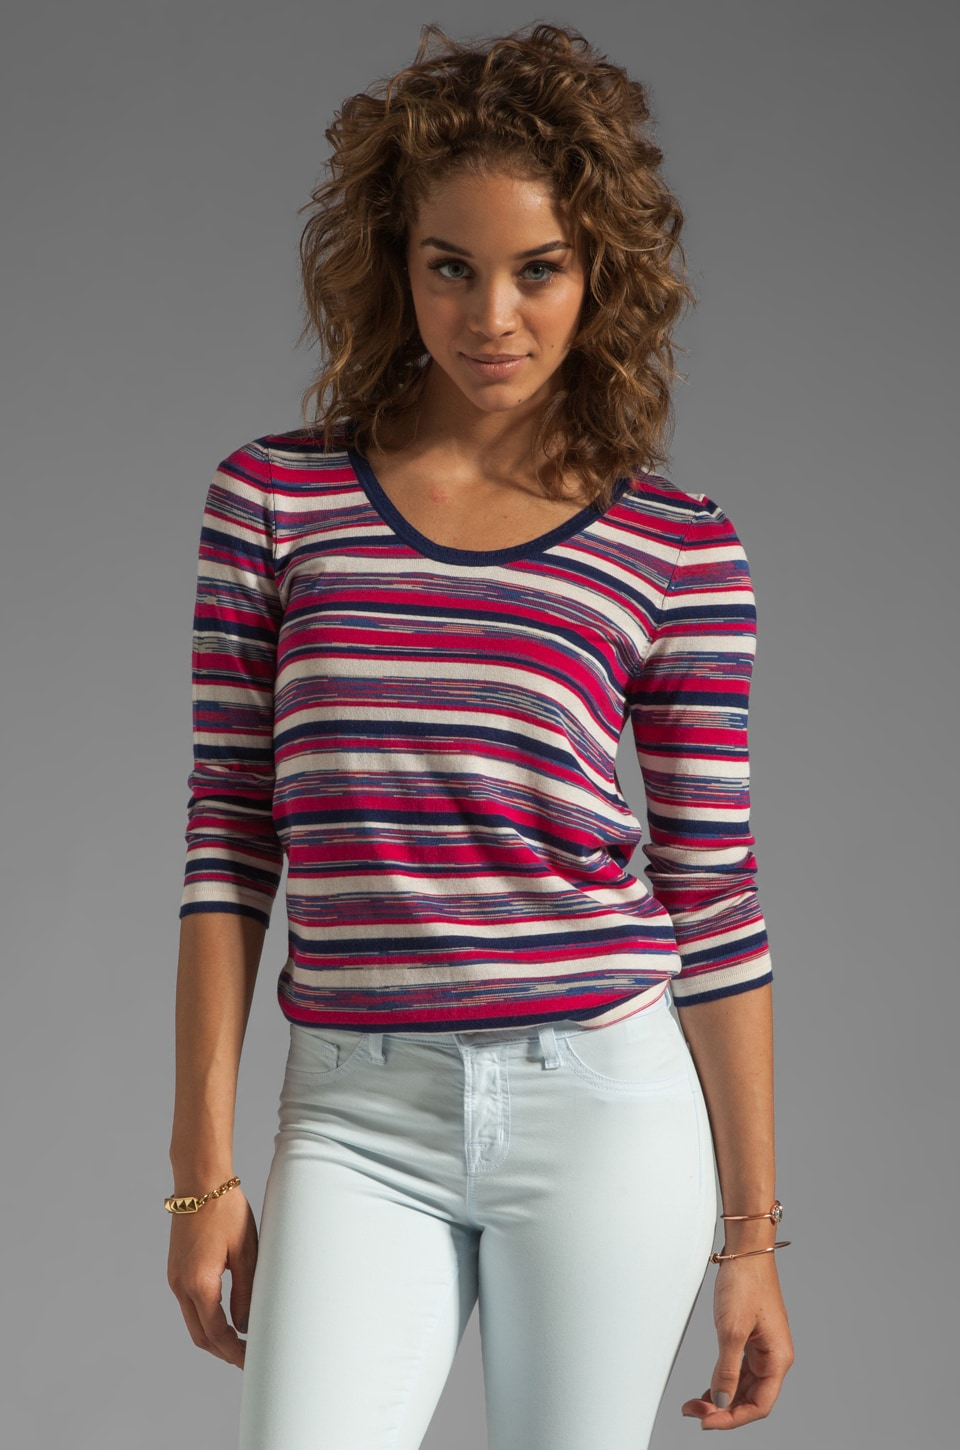 Marc by Marc Jacobs Marion Stripe Sweater in Cerise Multi